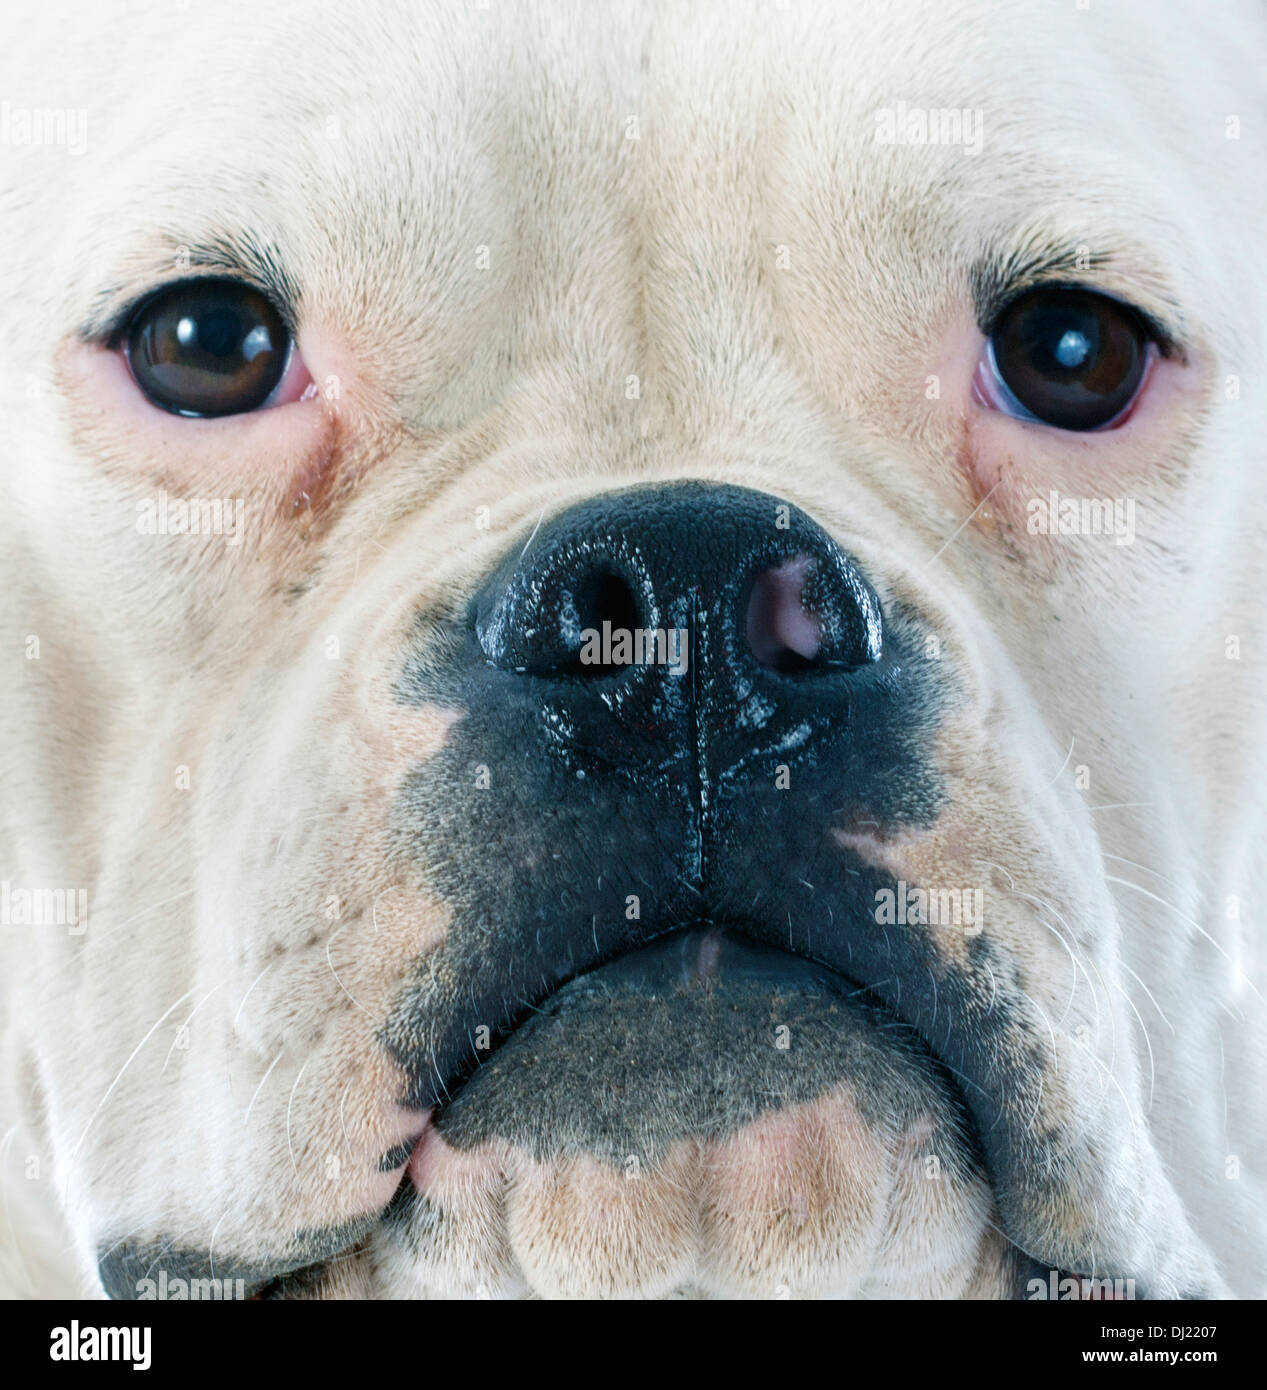 American Bulldog in front of white background Banque D'Images